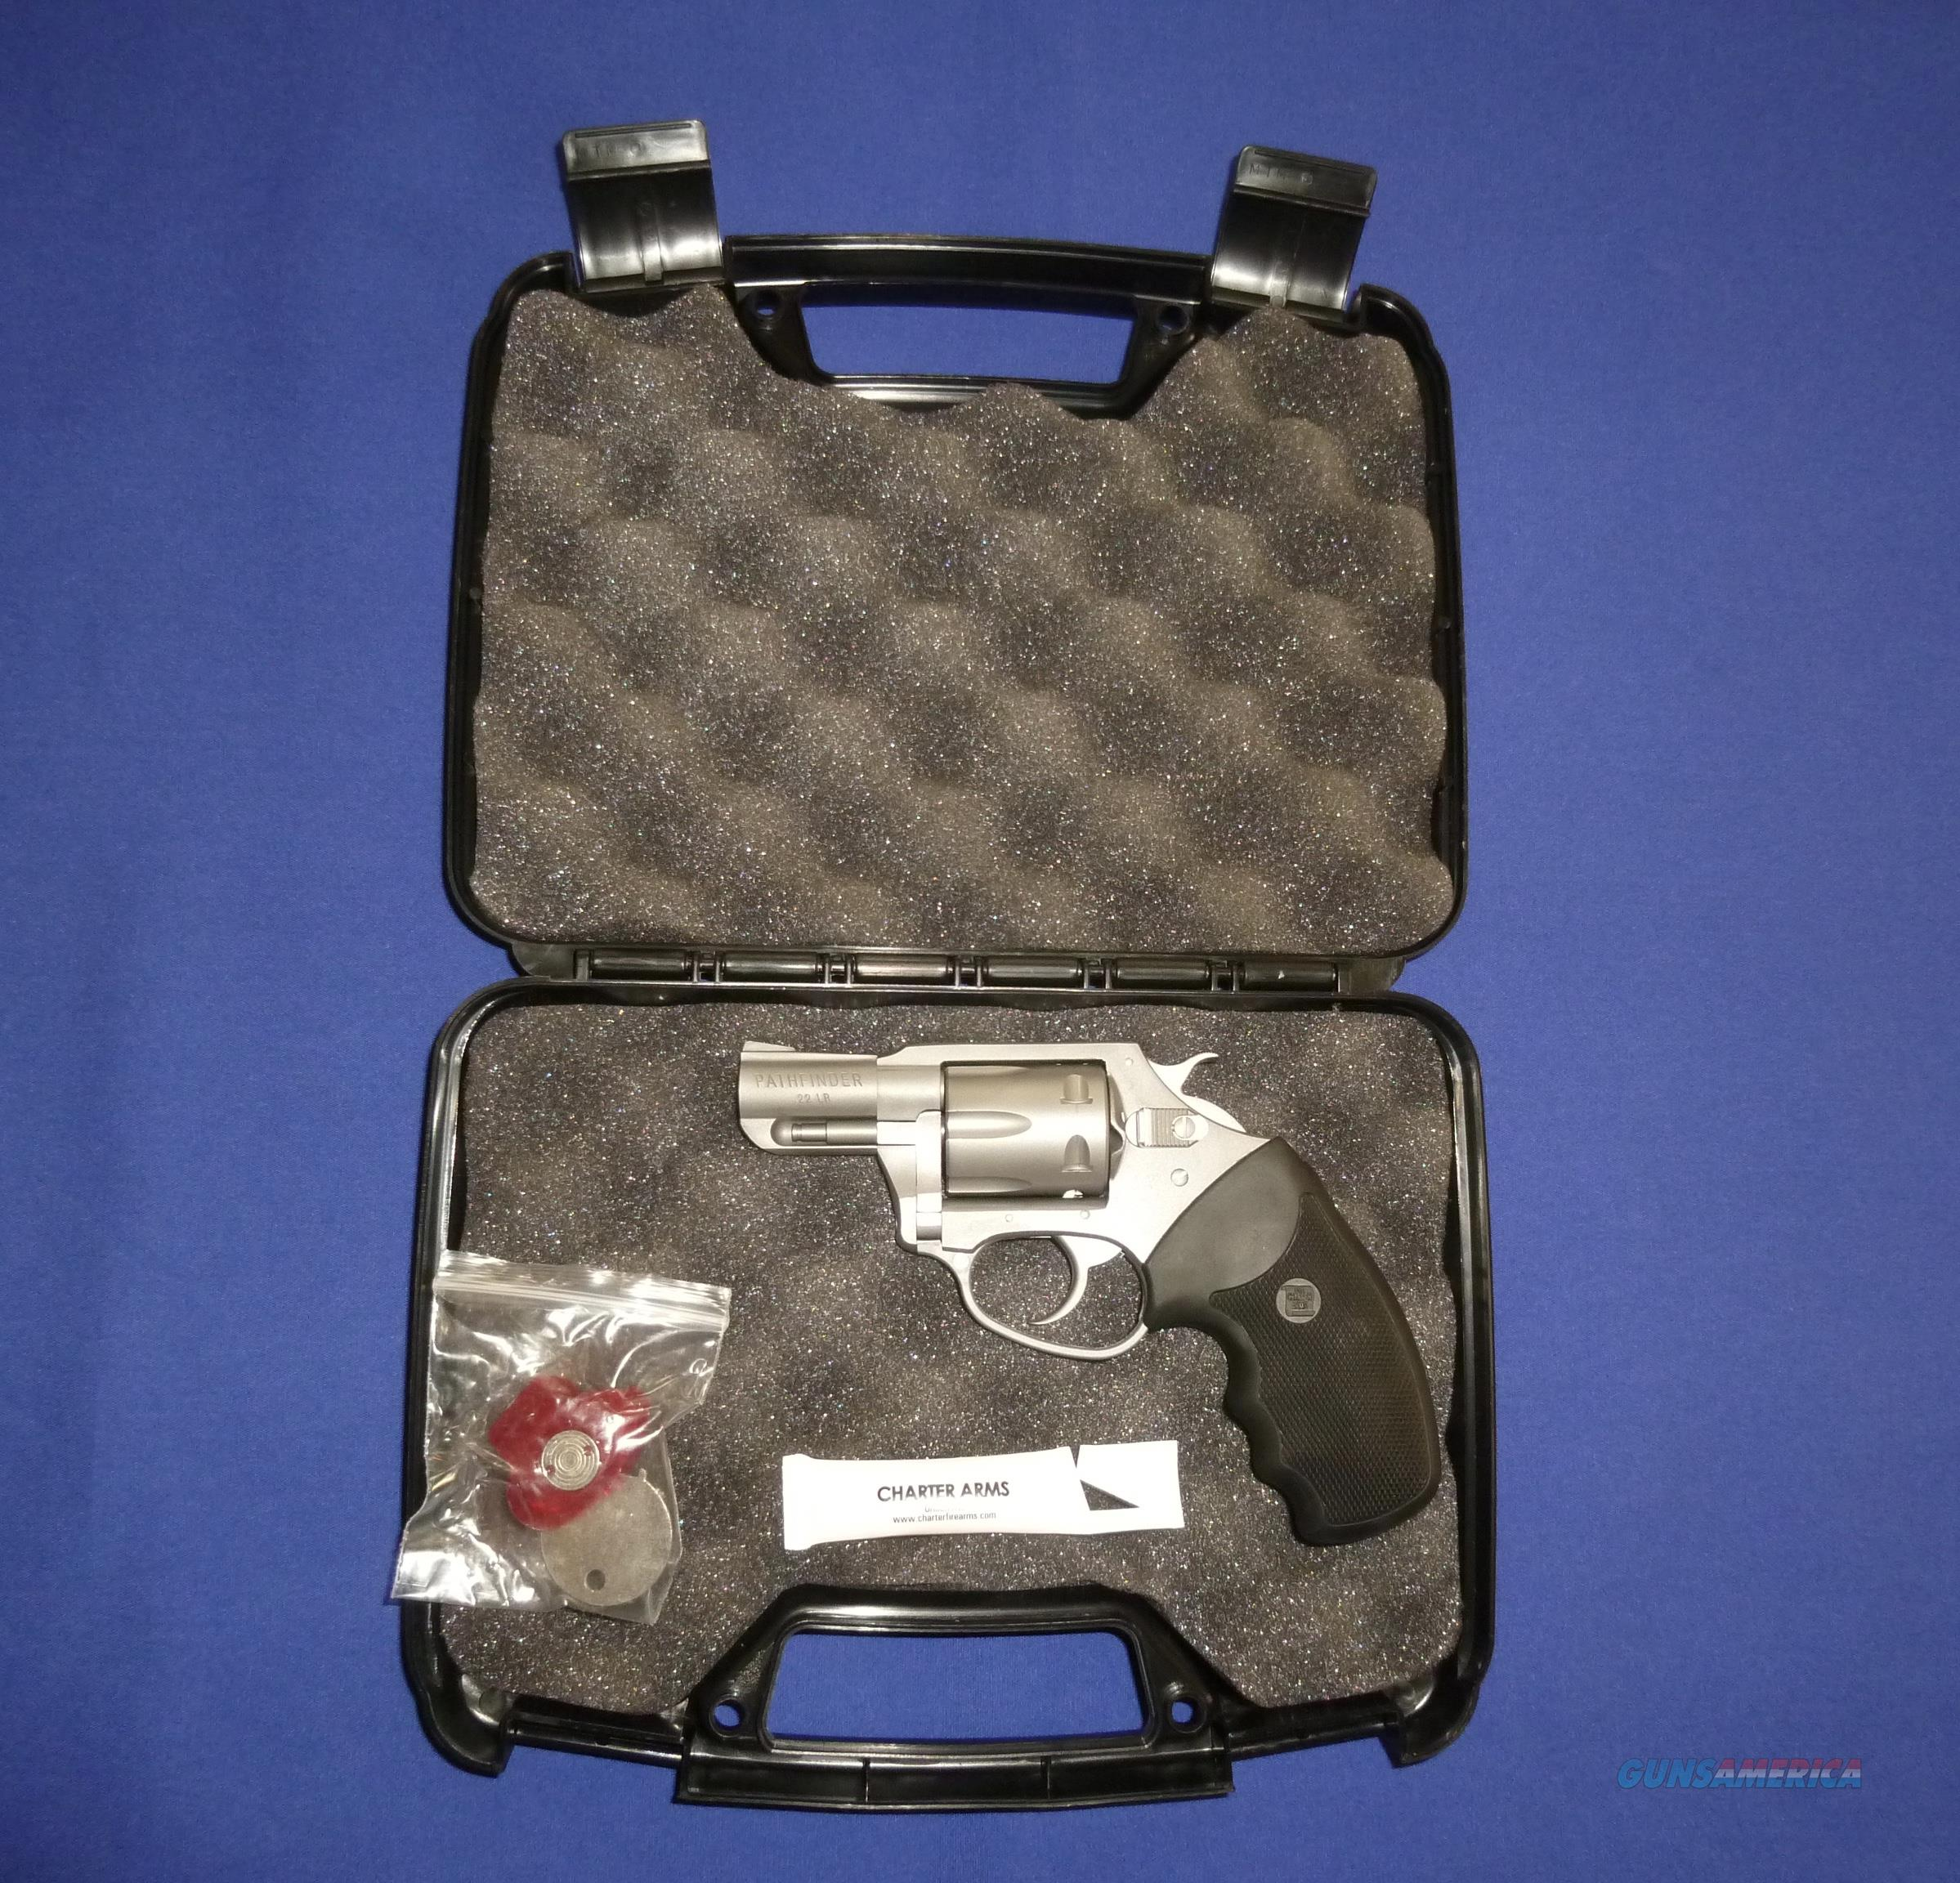 Charter Arms Pathfinder 22LR Snubbie Revolver NEW!  Guns > Pistols > Charter Arms Revolvers